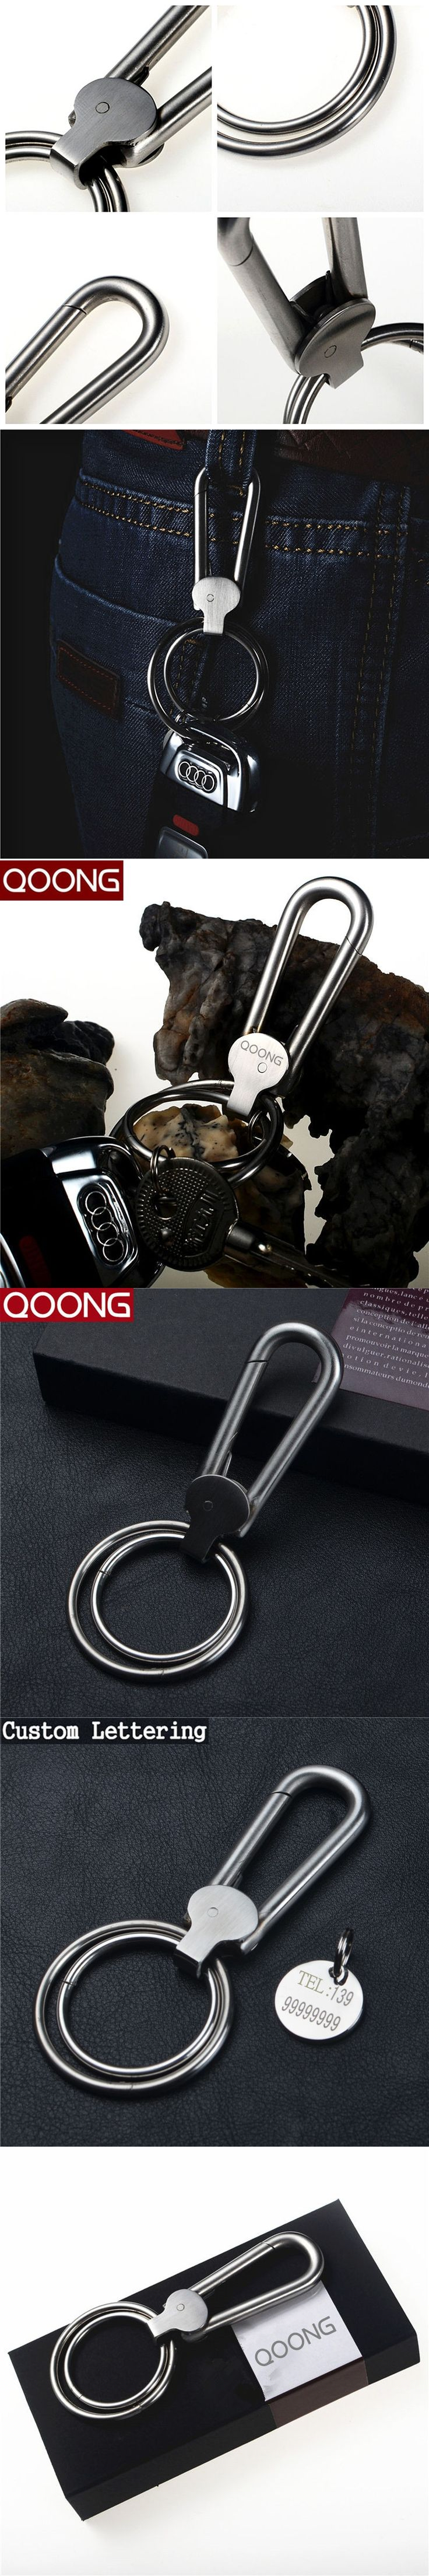 QOONG 2016 Business Handmade Keychain High-grade 304 Stainless Steel Men Key  Chain Metal Male